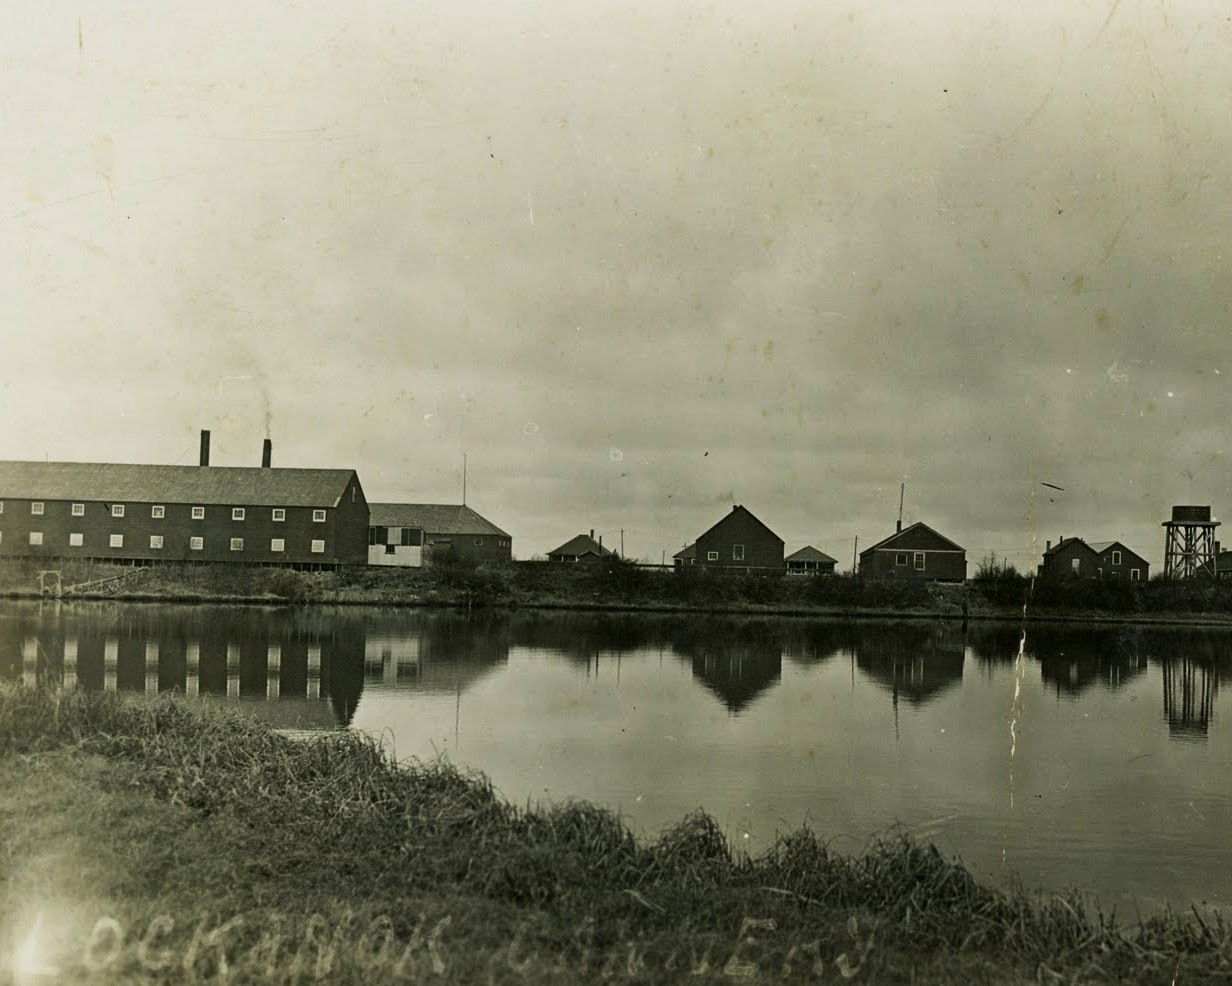 The Libby, McNeill and Libby cannery at Lockanok was built in 1900 at the mouth of the Alagnak River by the North Alaska Salmon Company from San Francisco. The cannery reportedly burned in 1937. Photo circa 1920-1930.